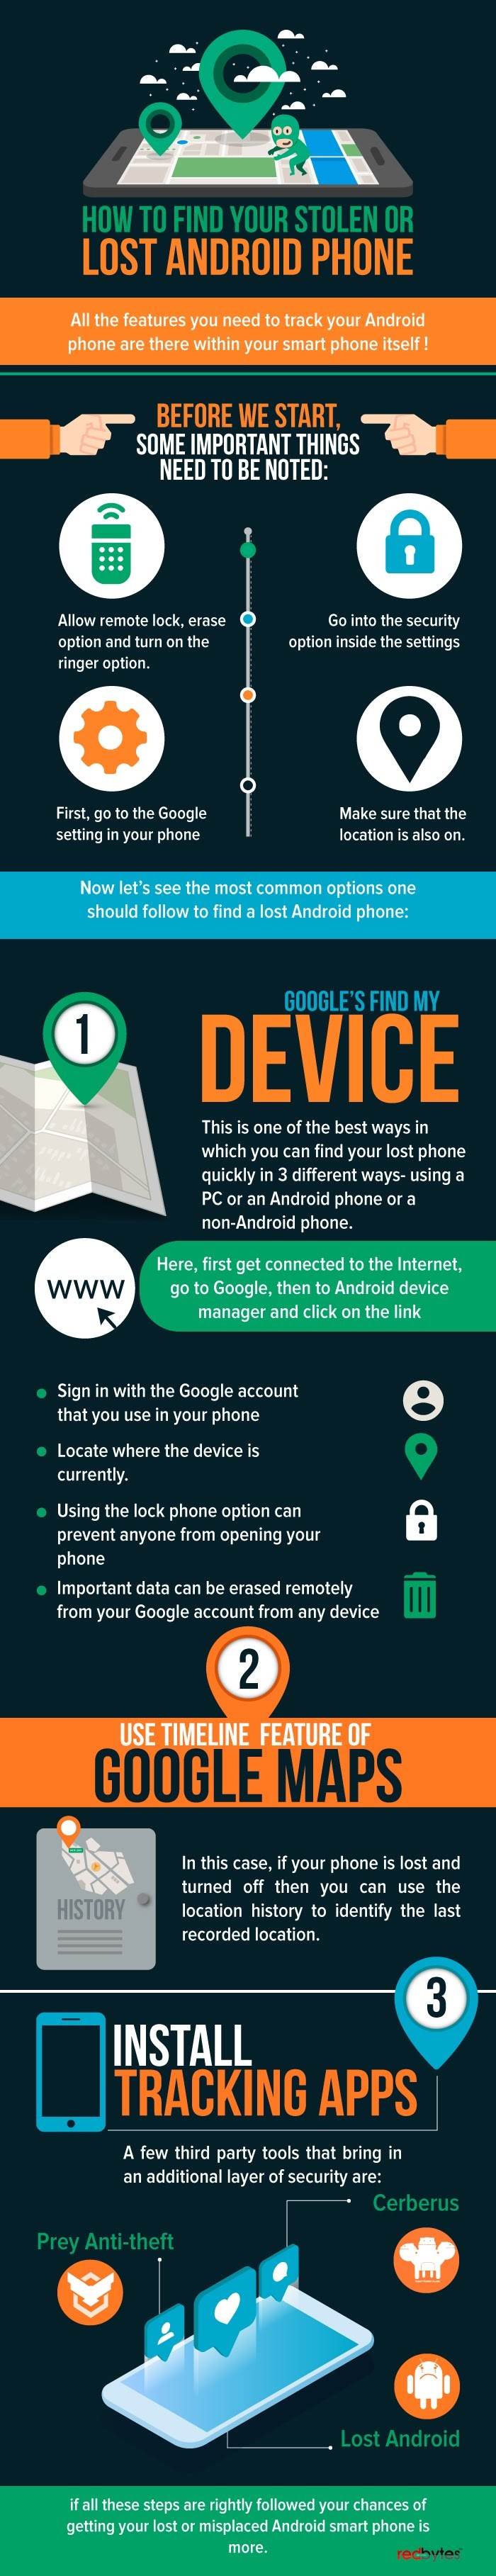 How To Find Your Stolen (or) Lost Android Phone